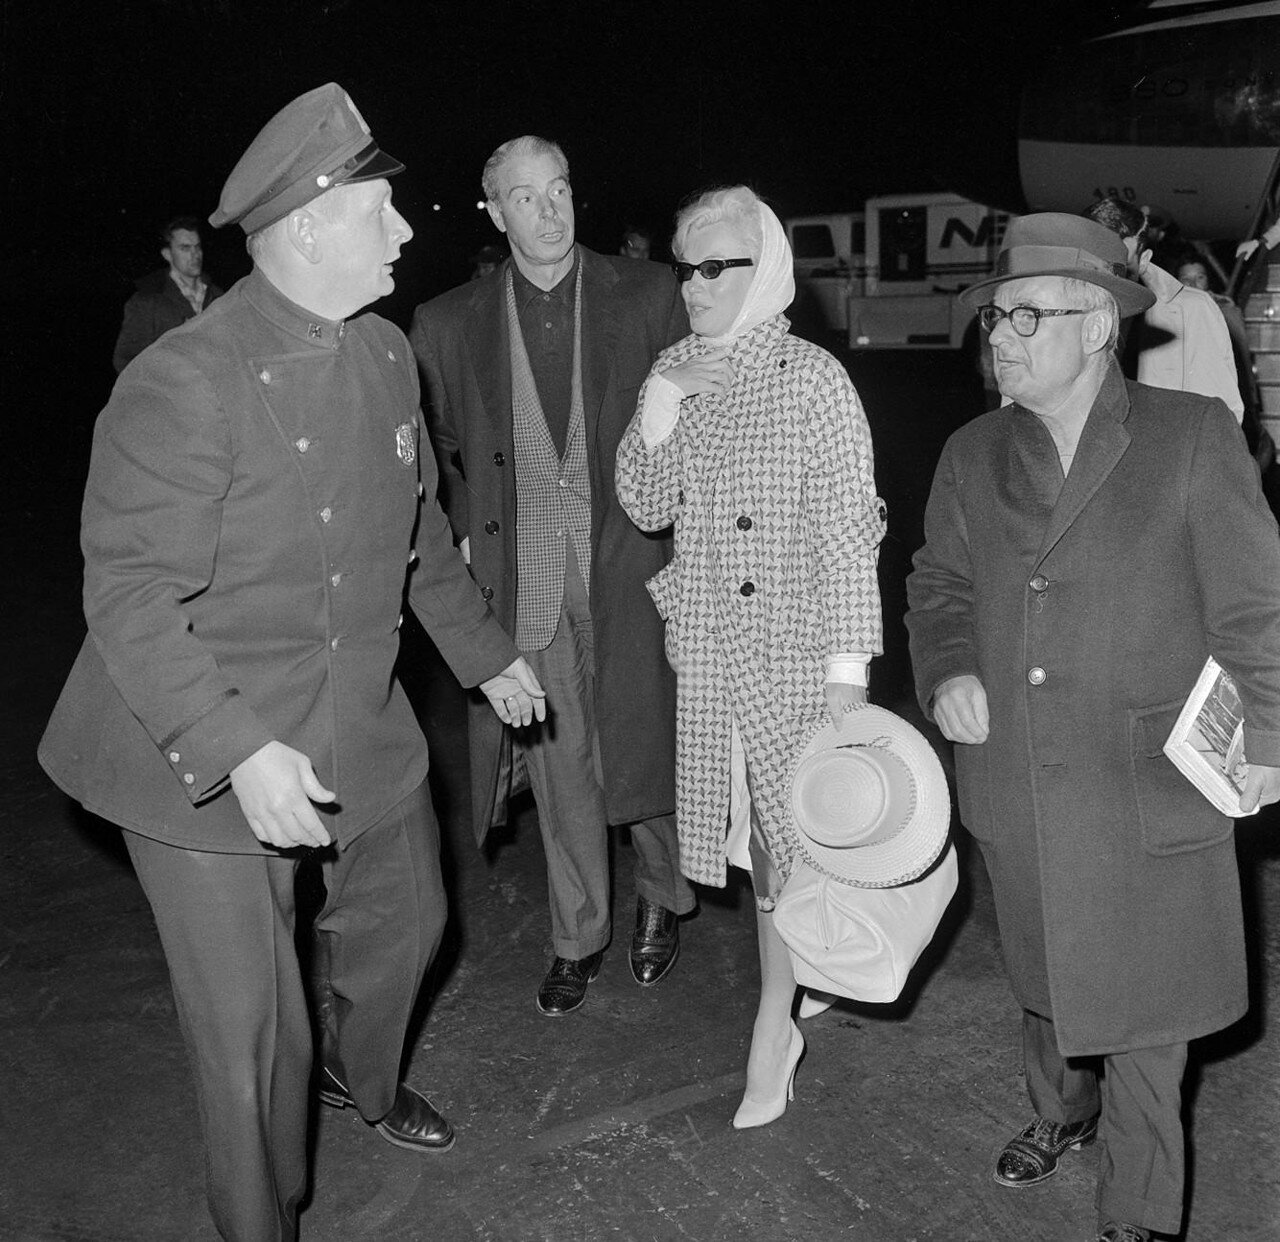 Marilyn Monroe and Joe DiMaggio Walking at Airport